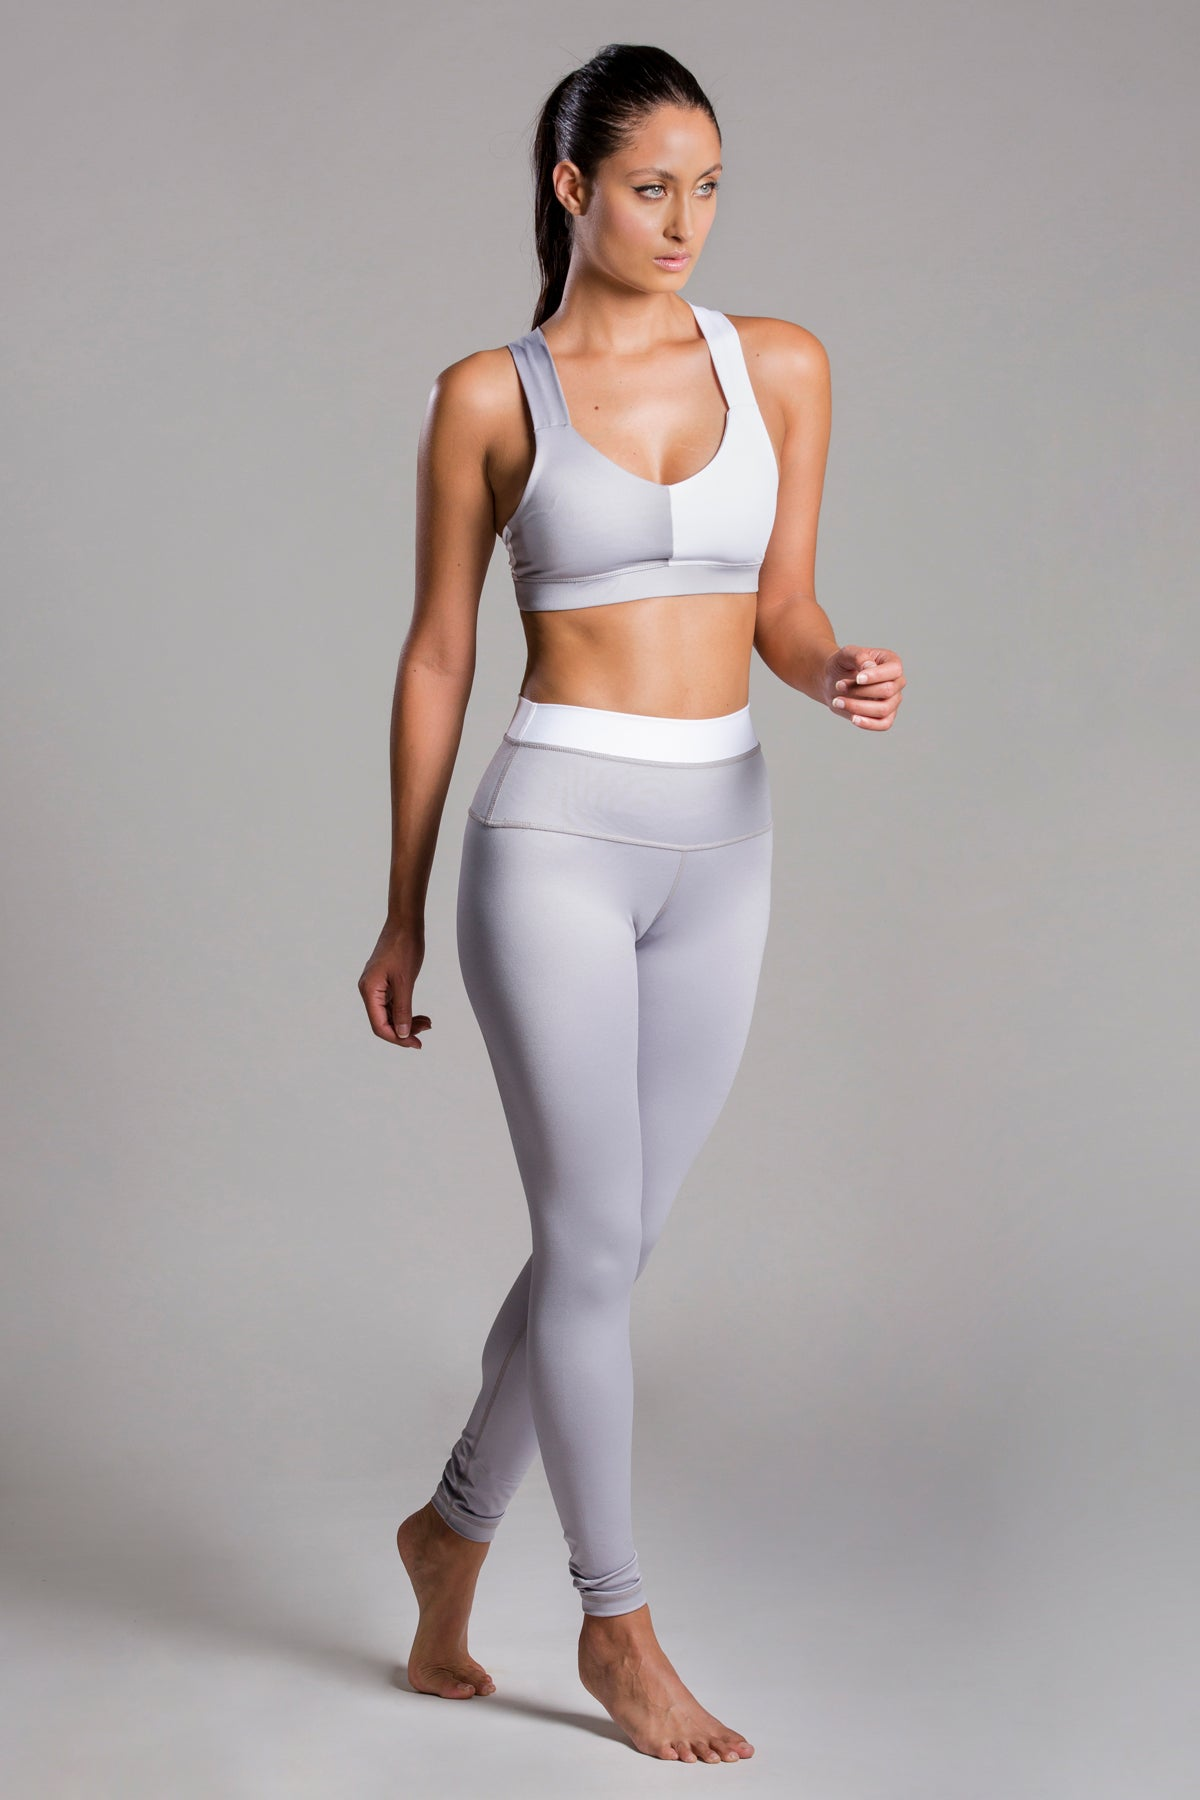 The Gray Due Total Look For Body Barre